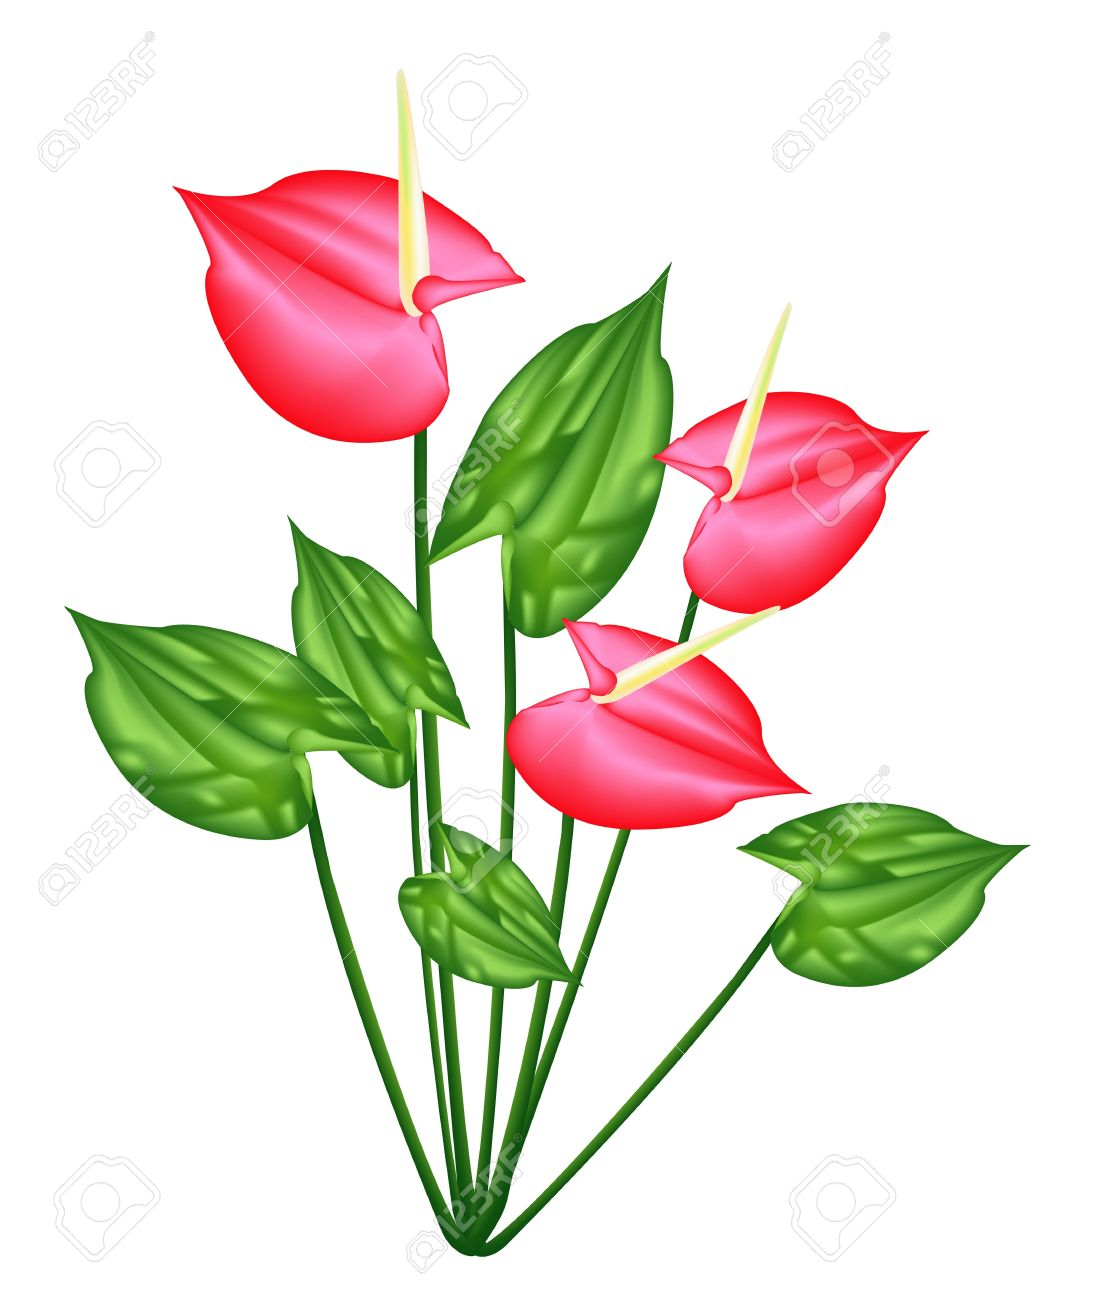 295 Anthurium Stock Vector Illustration And Royalty Free Anthurium.